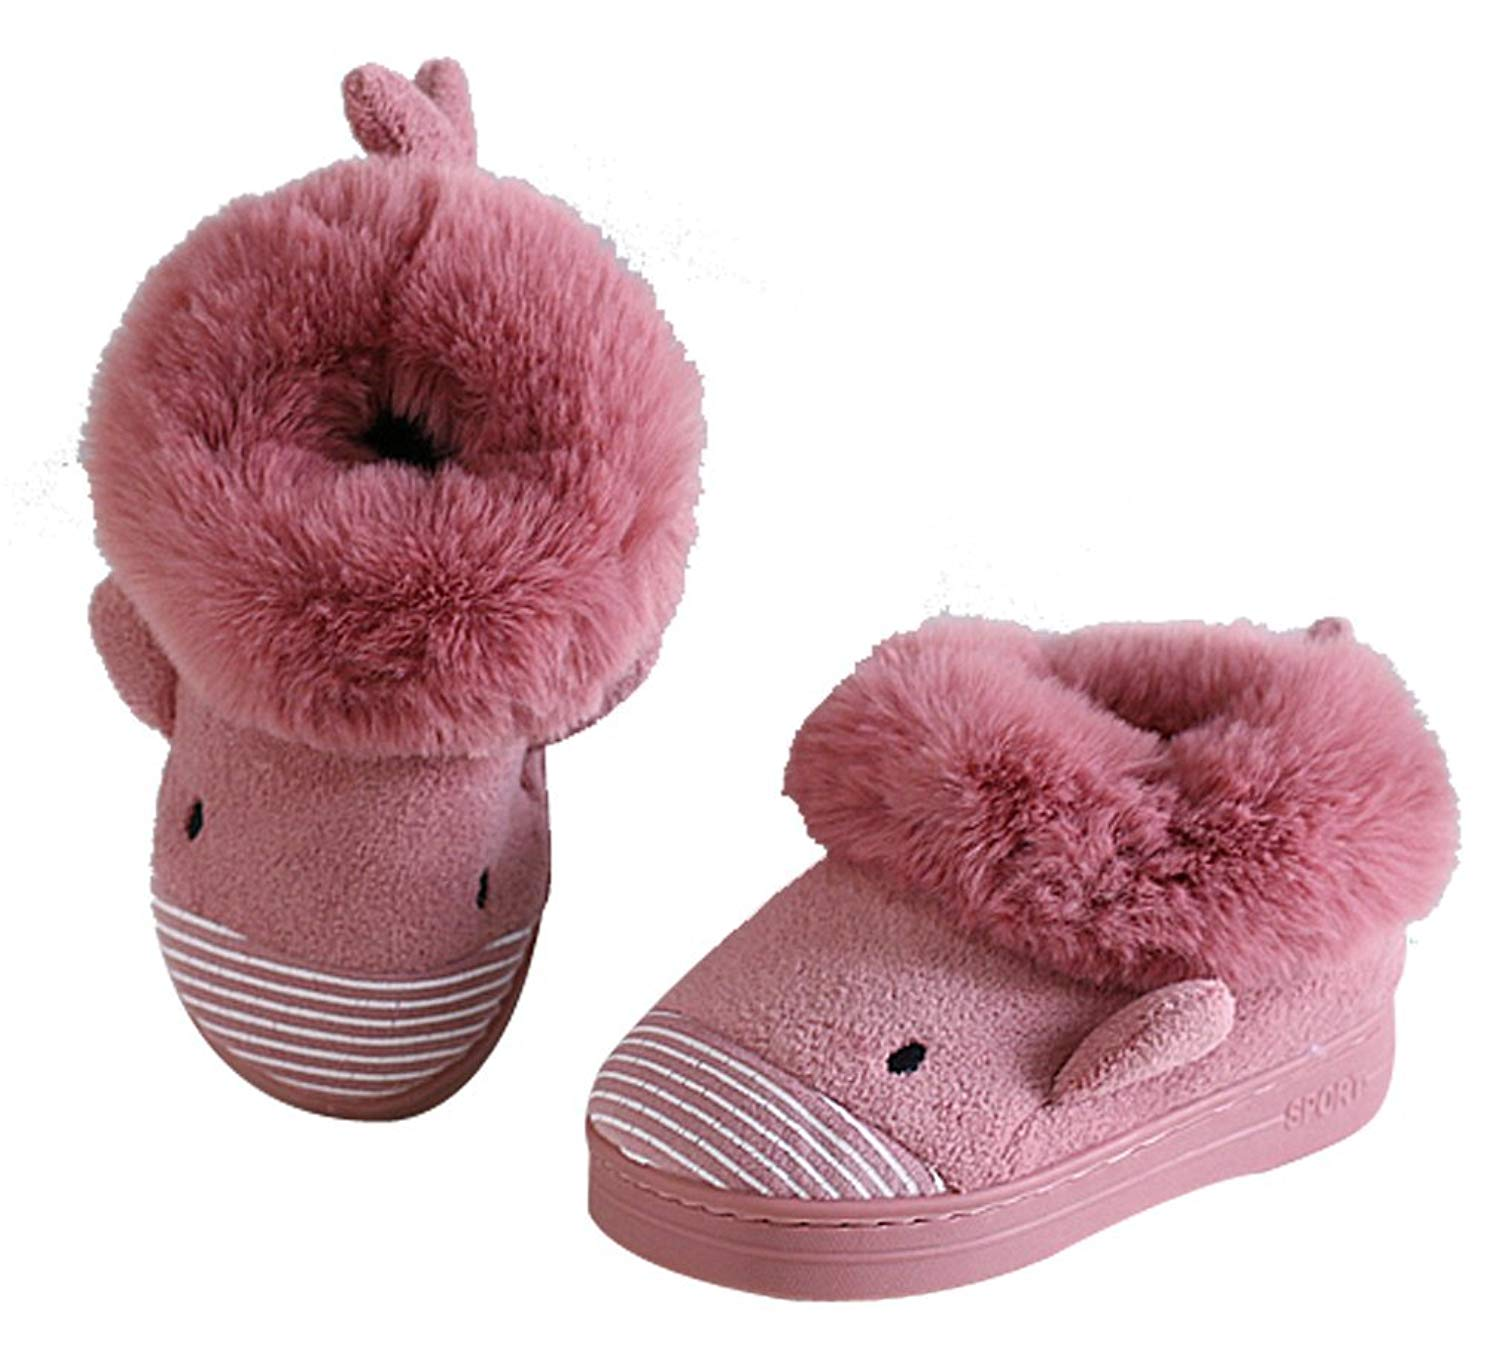 Cattior Fleece Warm Animal Slipper Shoes Cute Indoor Slippers House Shoes Toddler